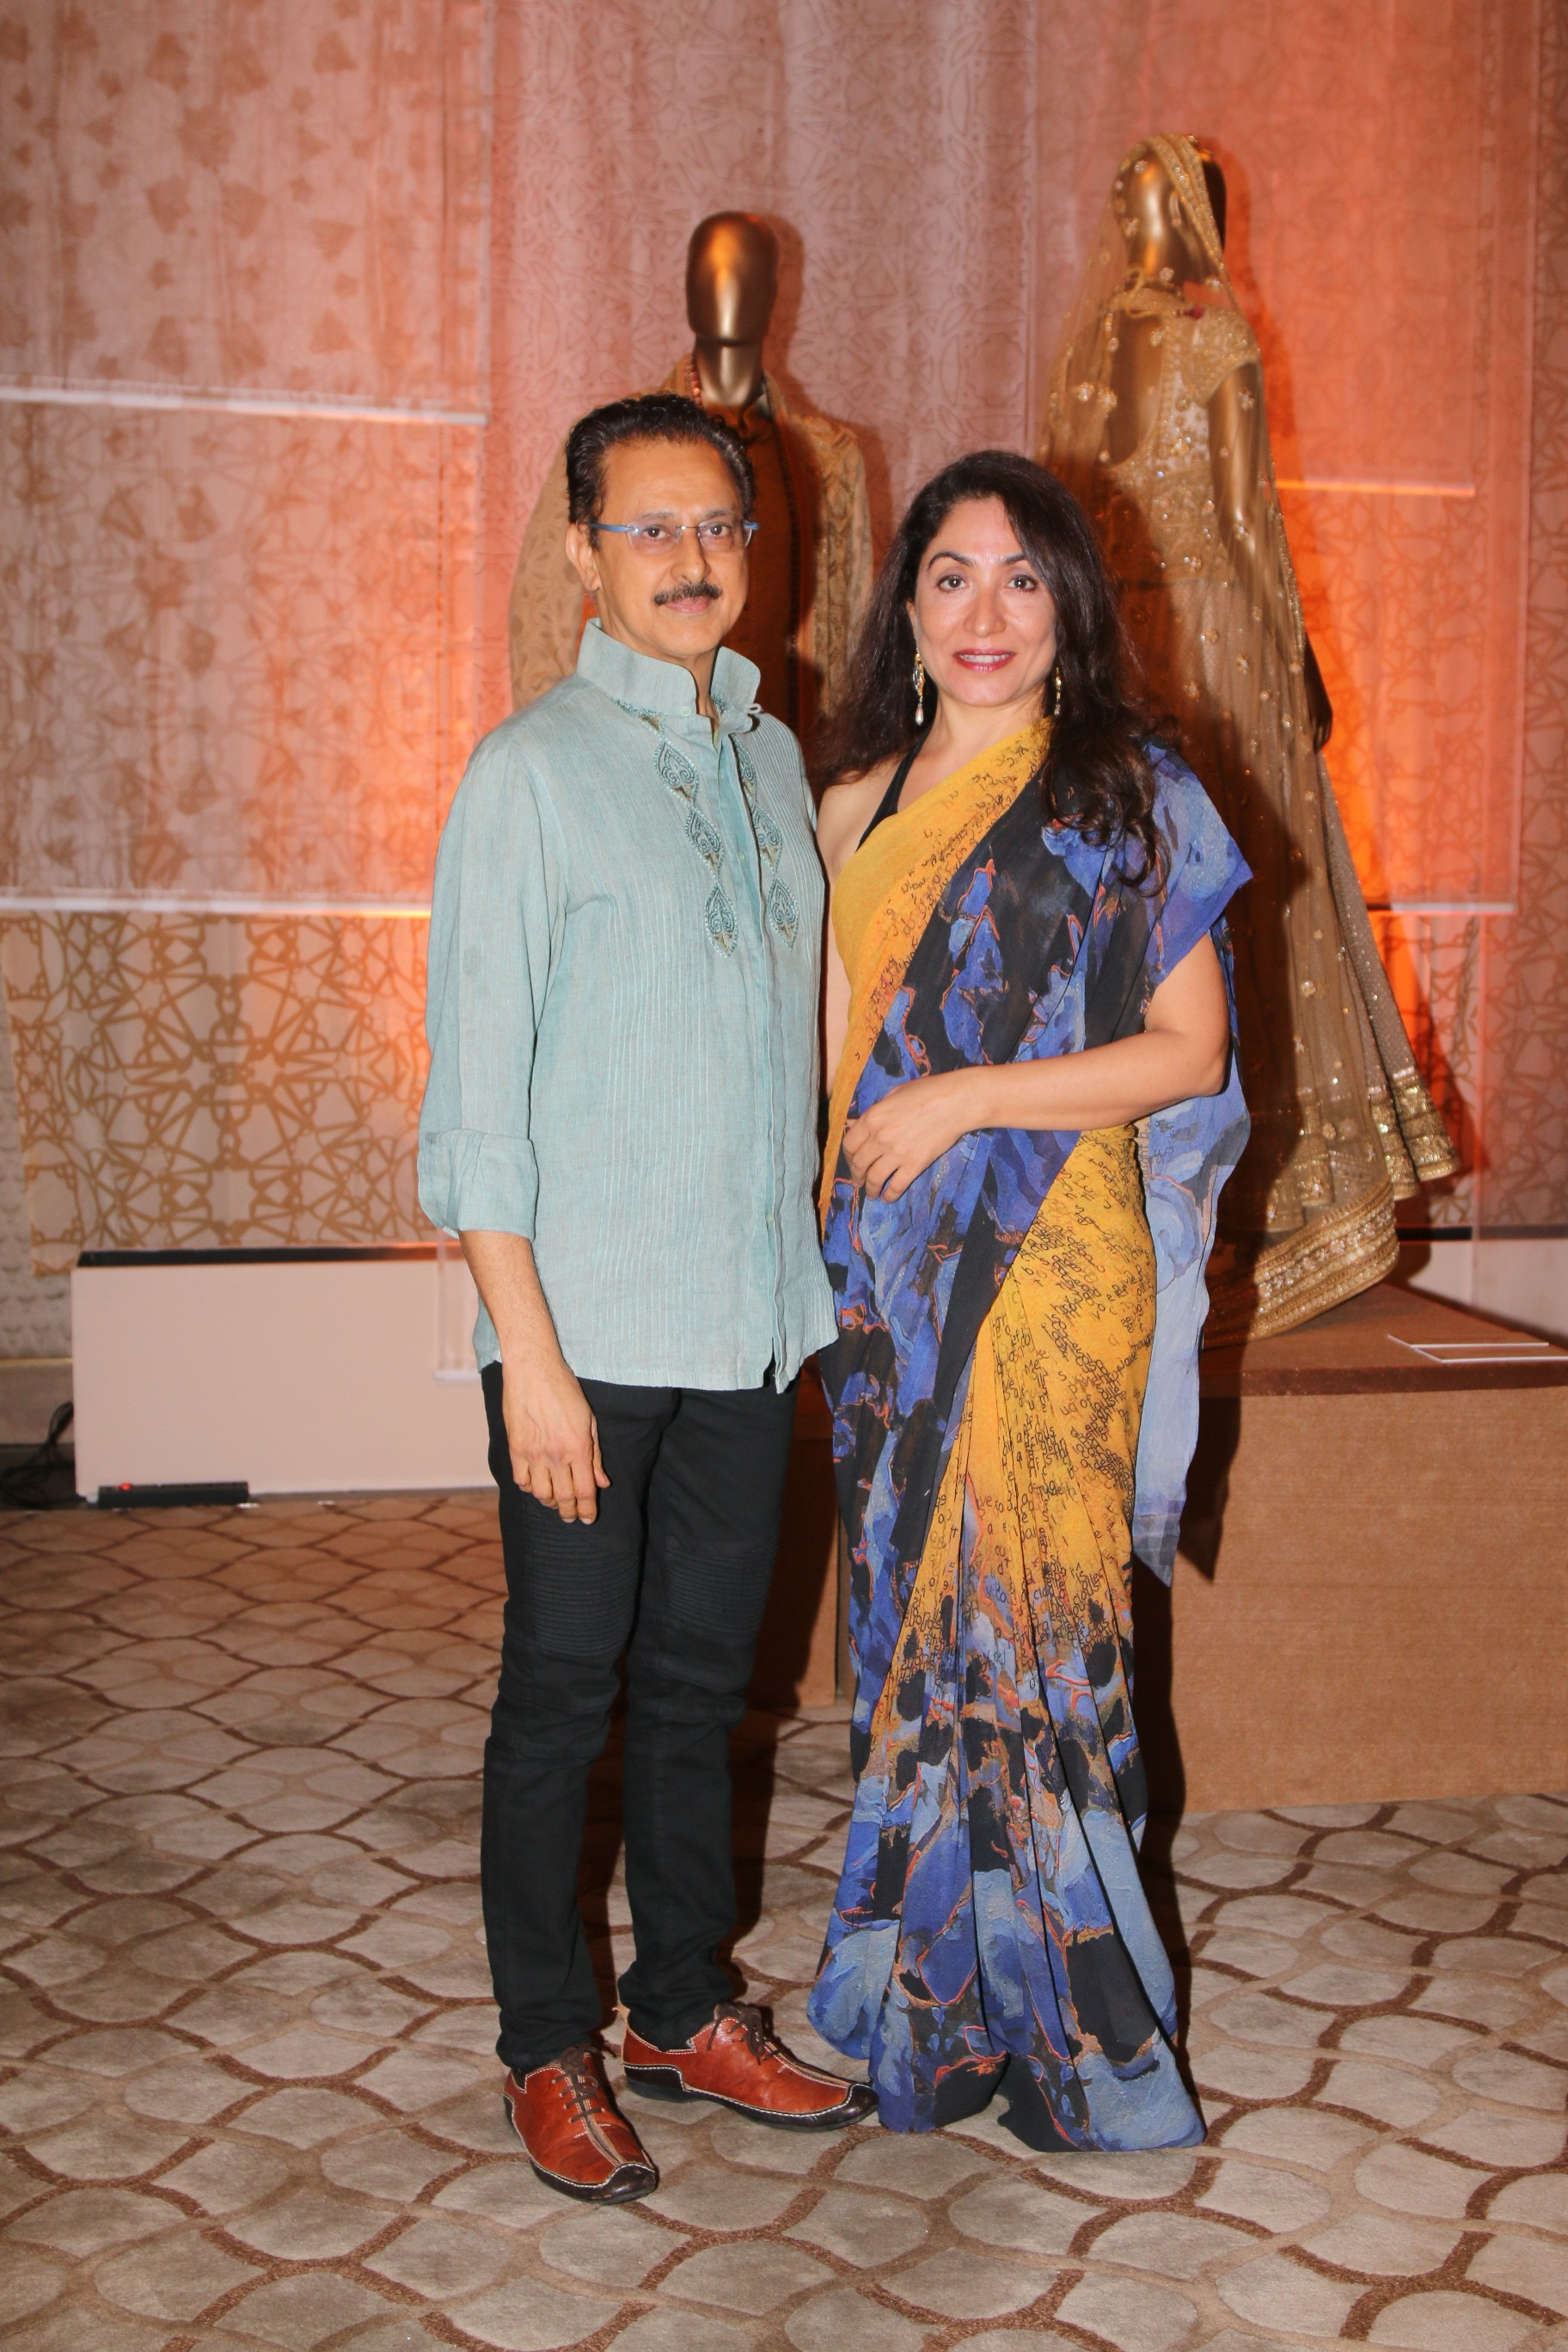 Jaideep and Seema Mehrotra